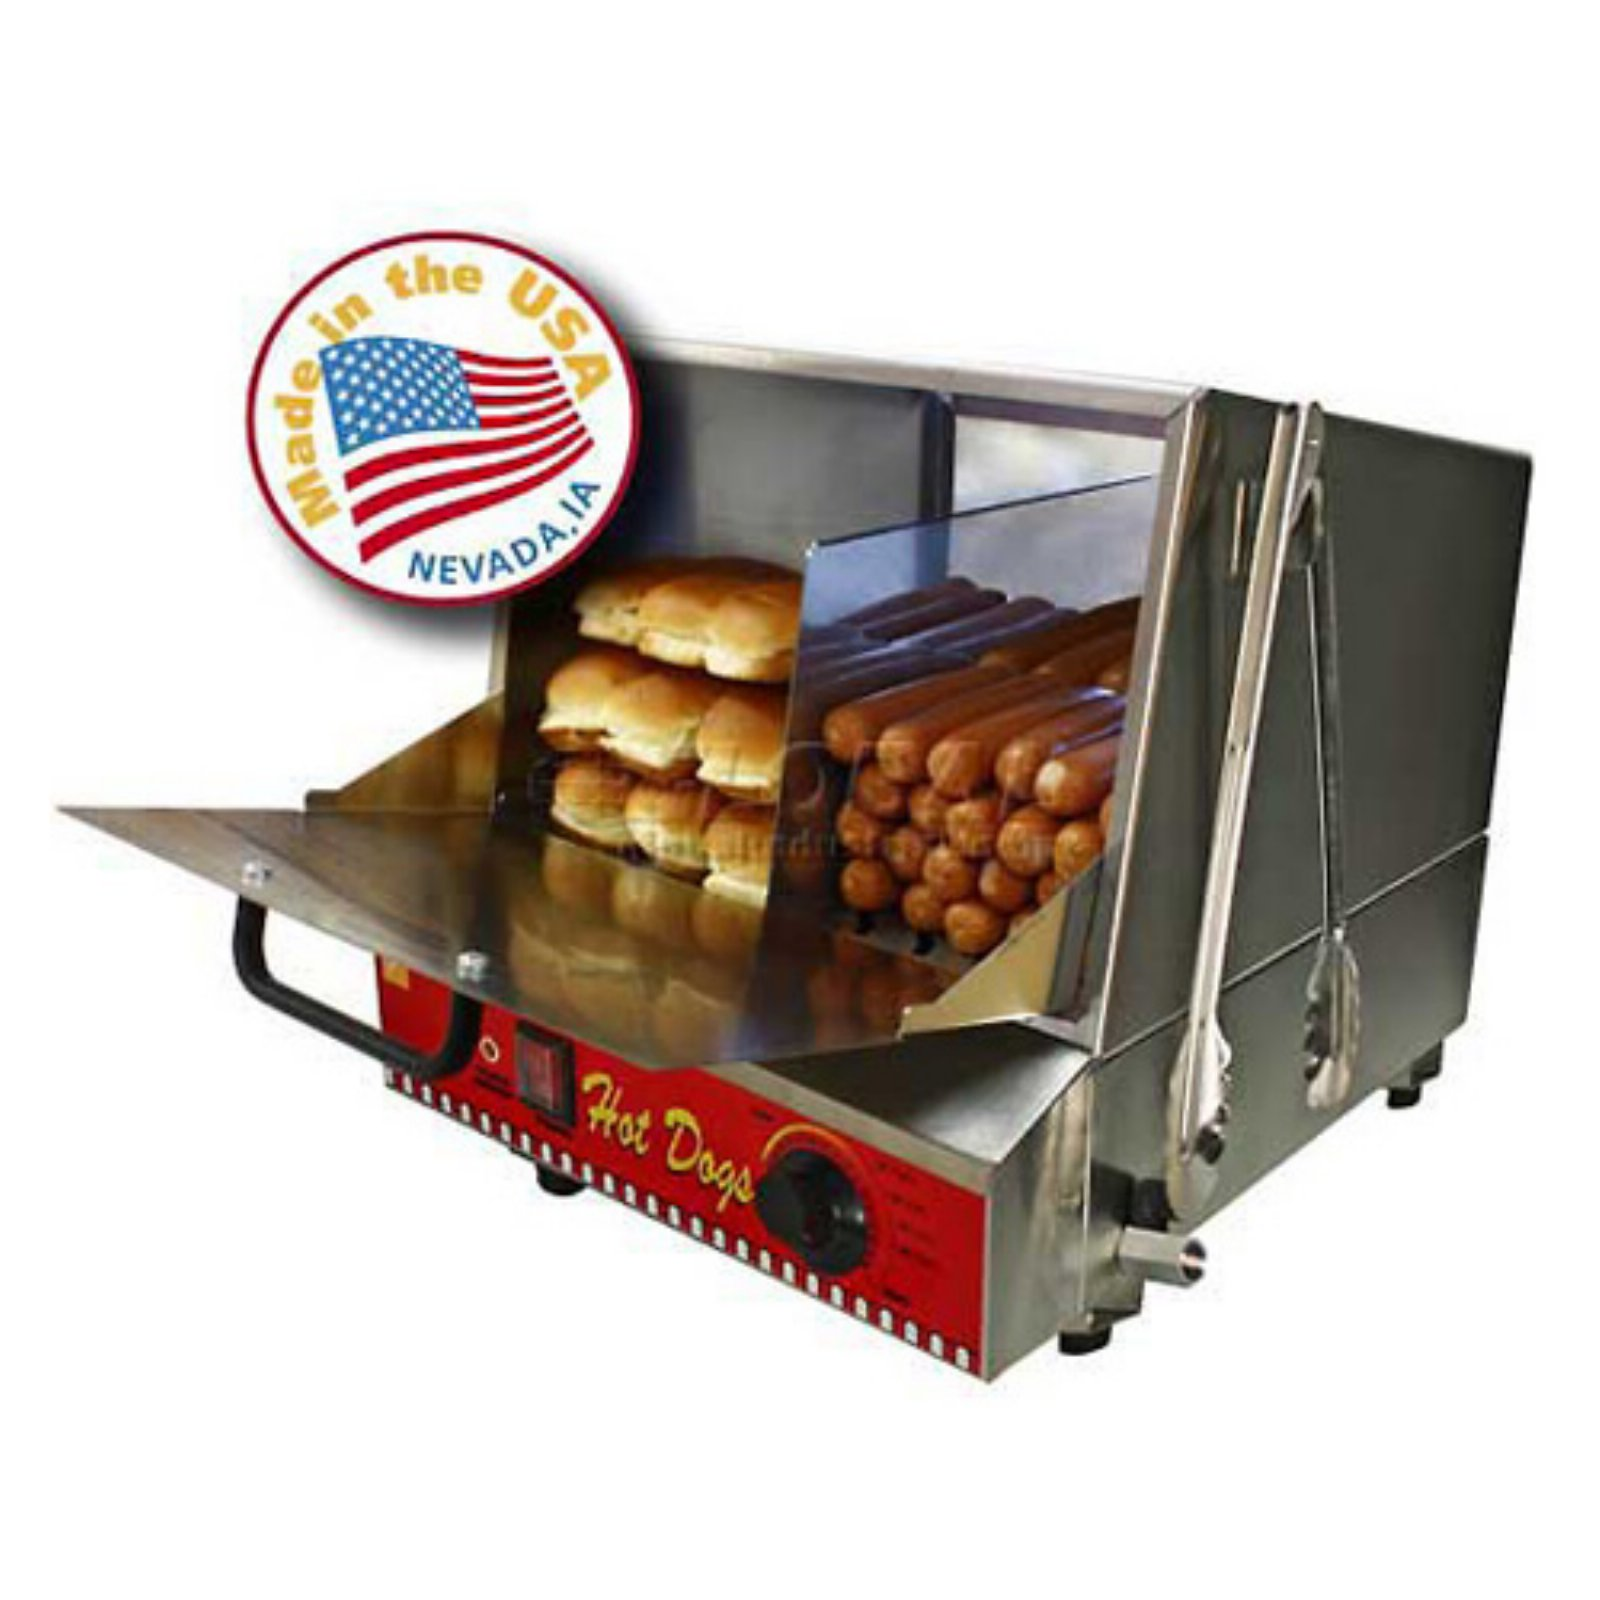 Paragon Classic Hot Dog Steamer